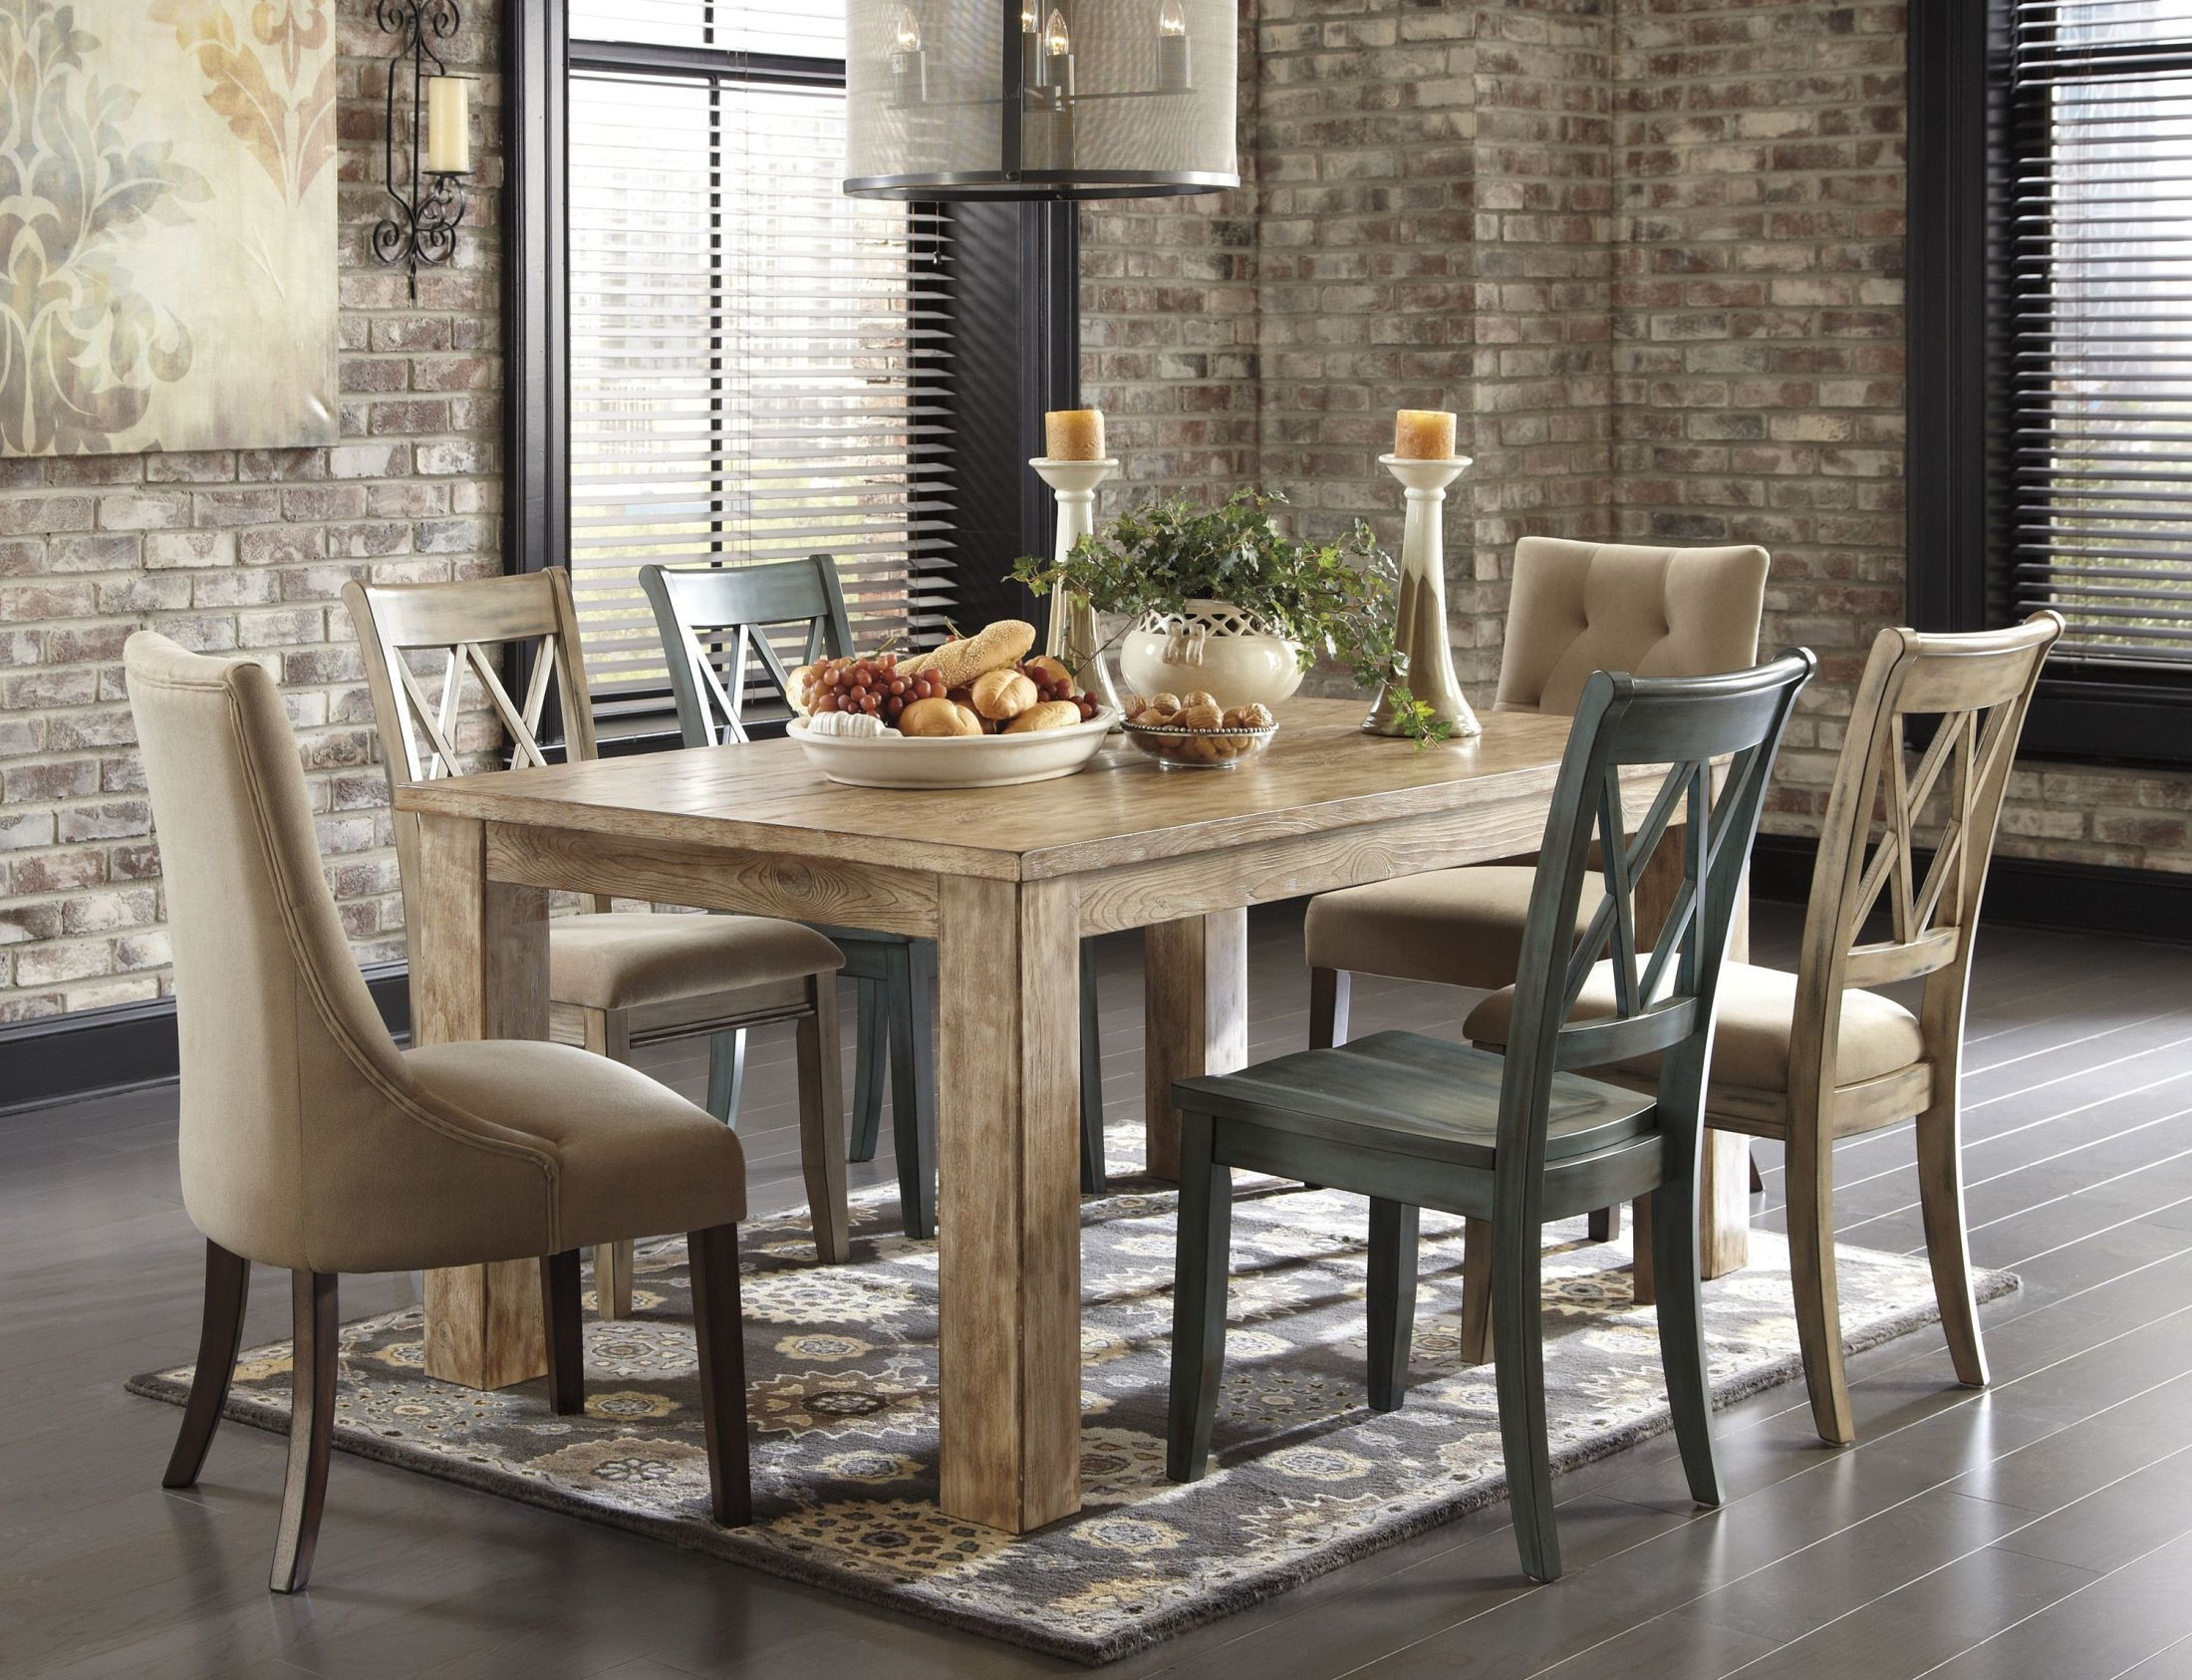 Mestler Driftwood Dining Room Set From Ashley D540 225